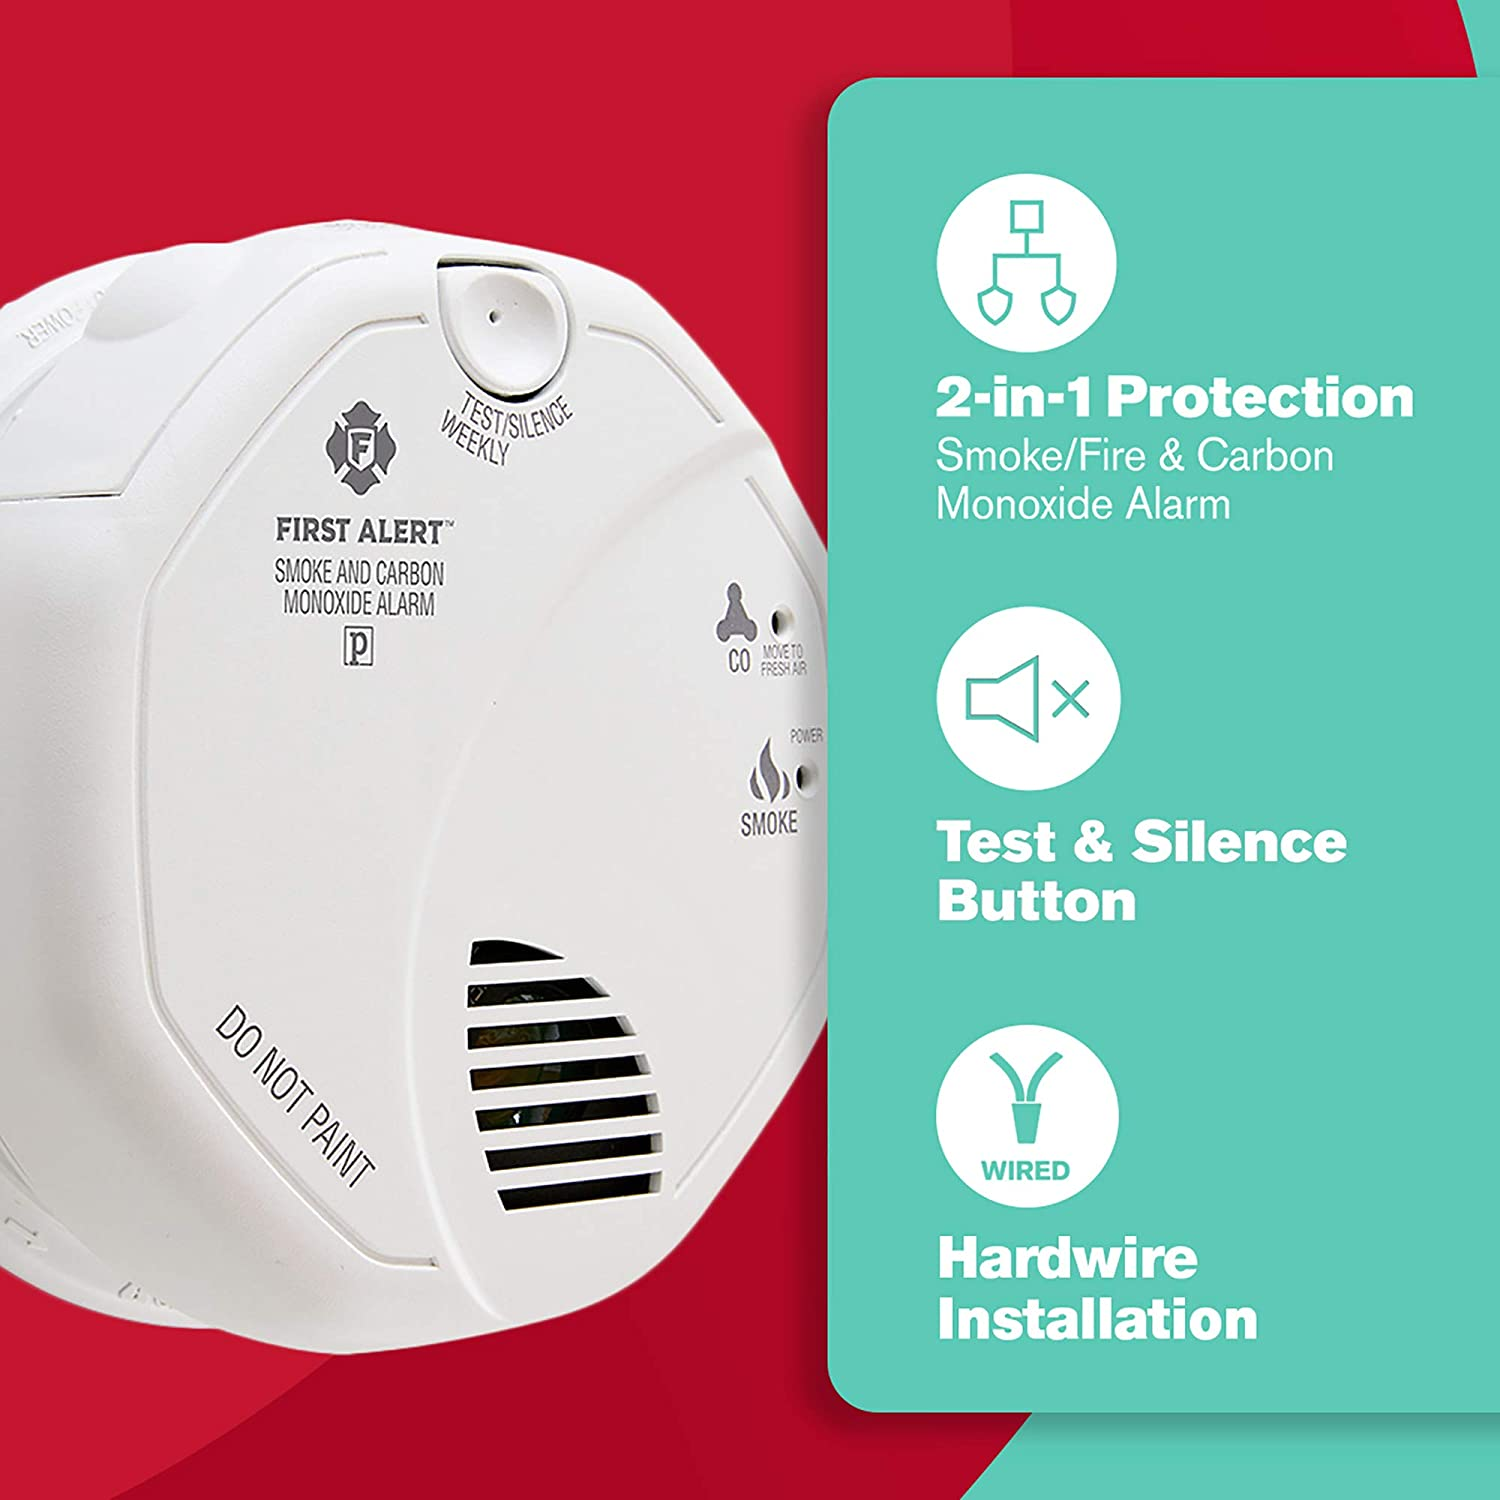 First Alert Brk Sc7010b Hardwire Combination Smoke And How To Wire Receptacle Controlled By Switch Hard Wiring Carbon Monoxide Alarm With Battery Backup Home Improvement